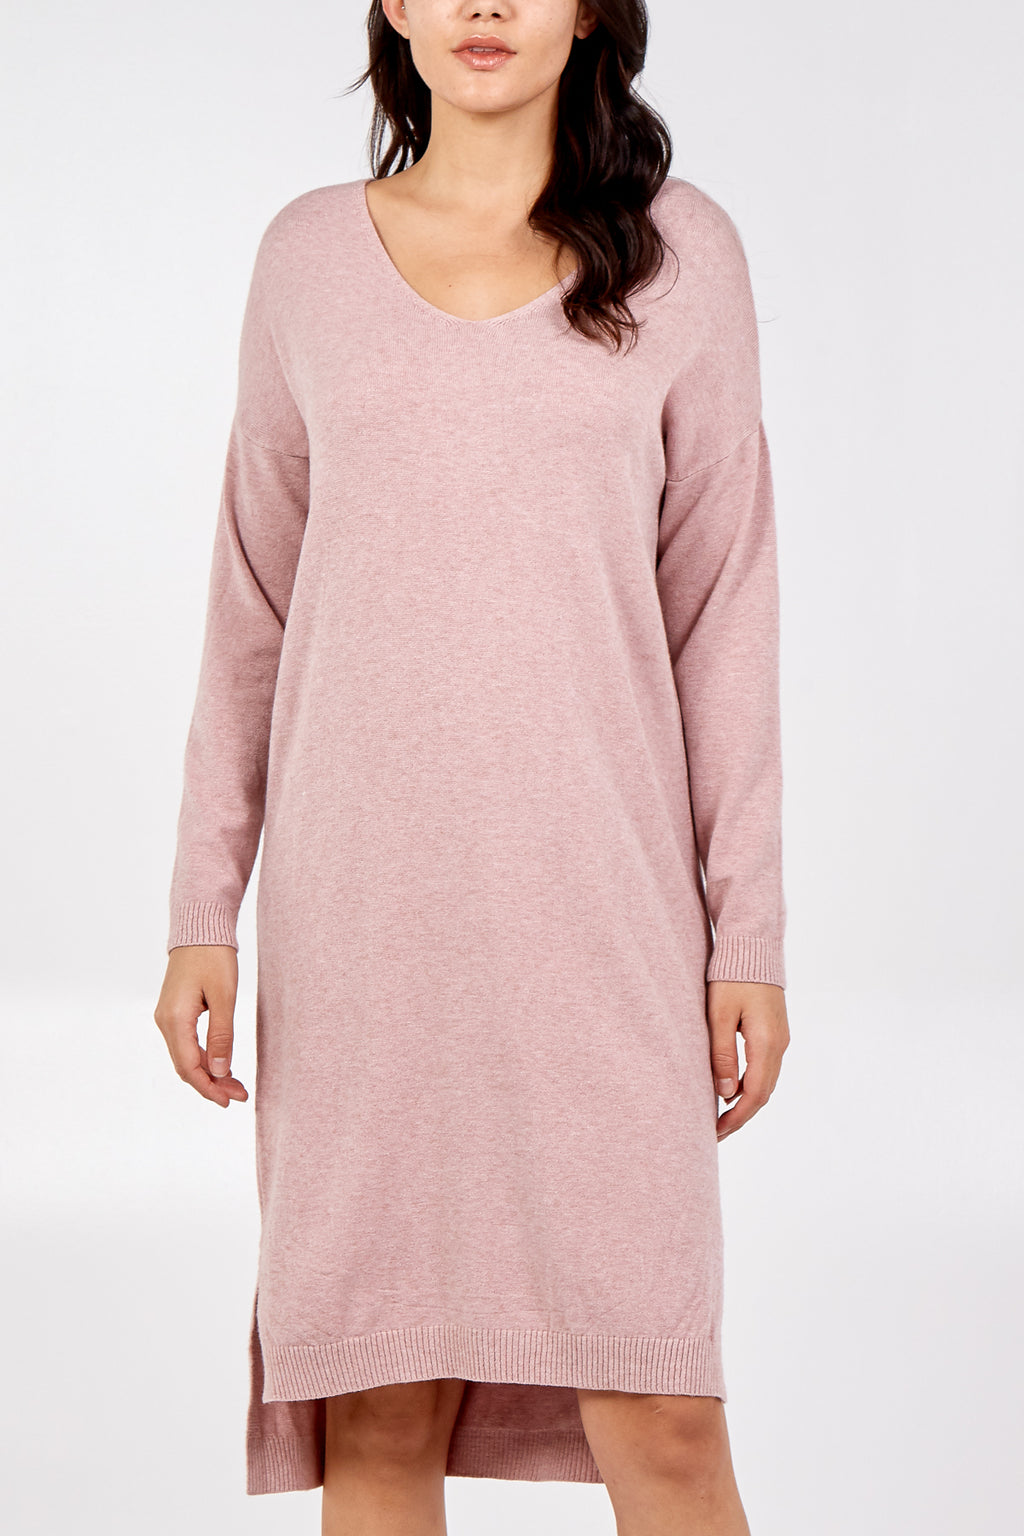 Super Soft Stretchy V Neck Knitted Dress